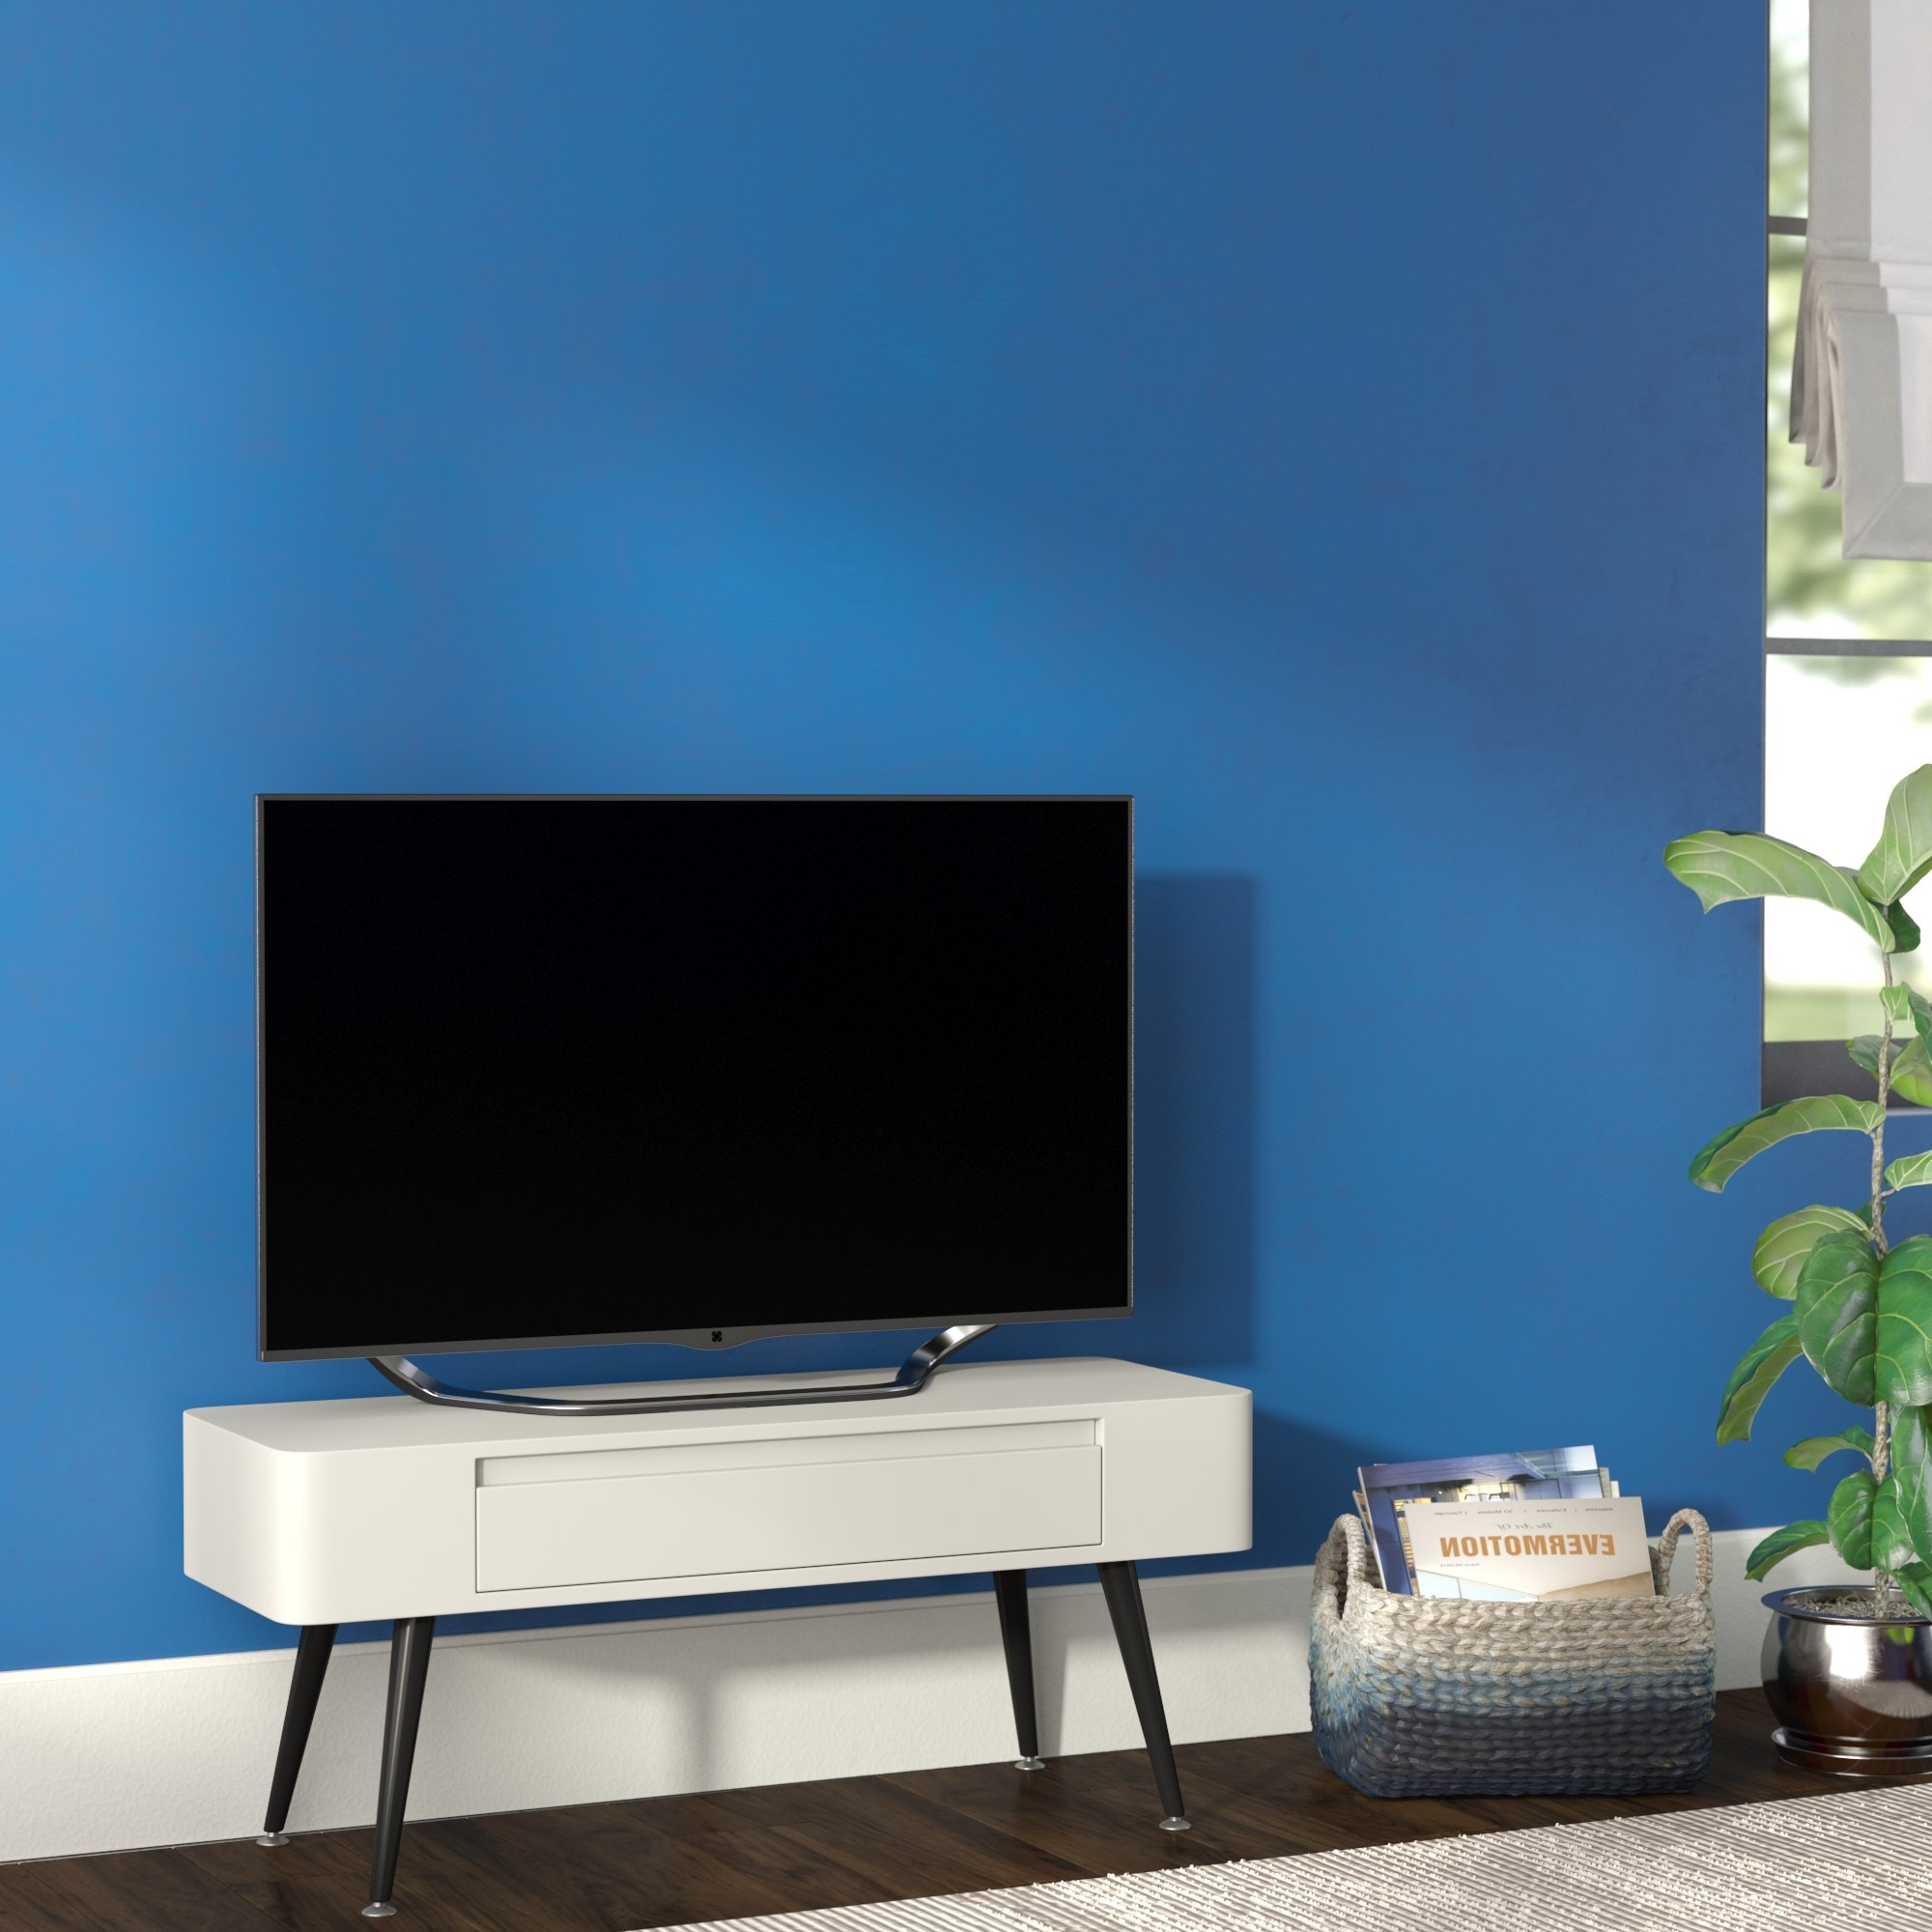 Scandinavian Tv Stands You'll Love | Wayfair.ca Intended For Annabelle Blue 70 Inch Tv Stands (Gallery 11 of 20)